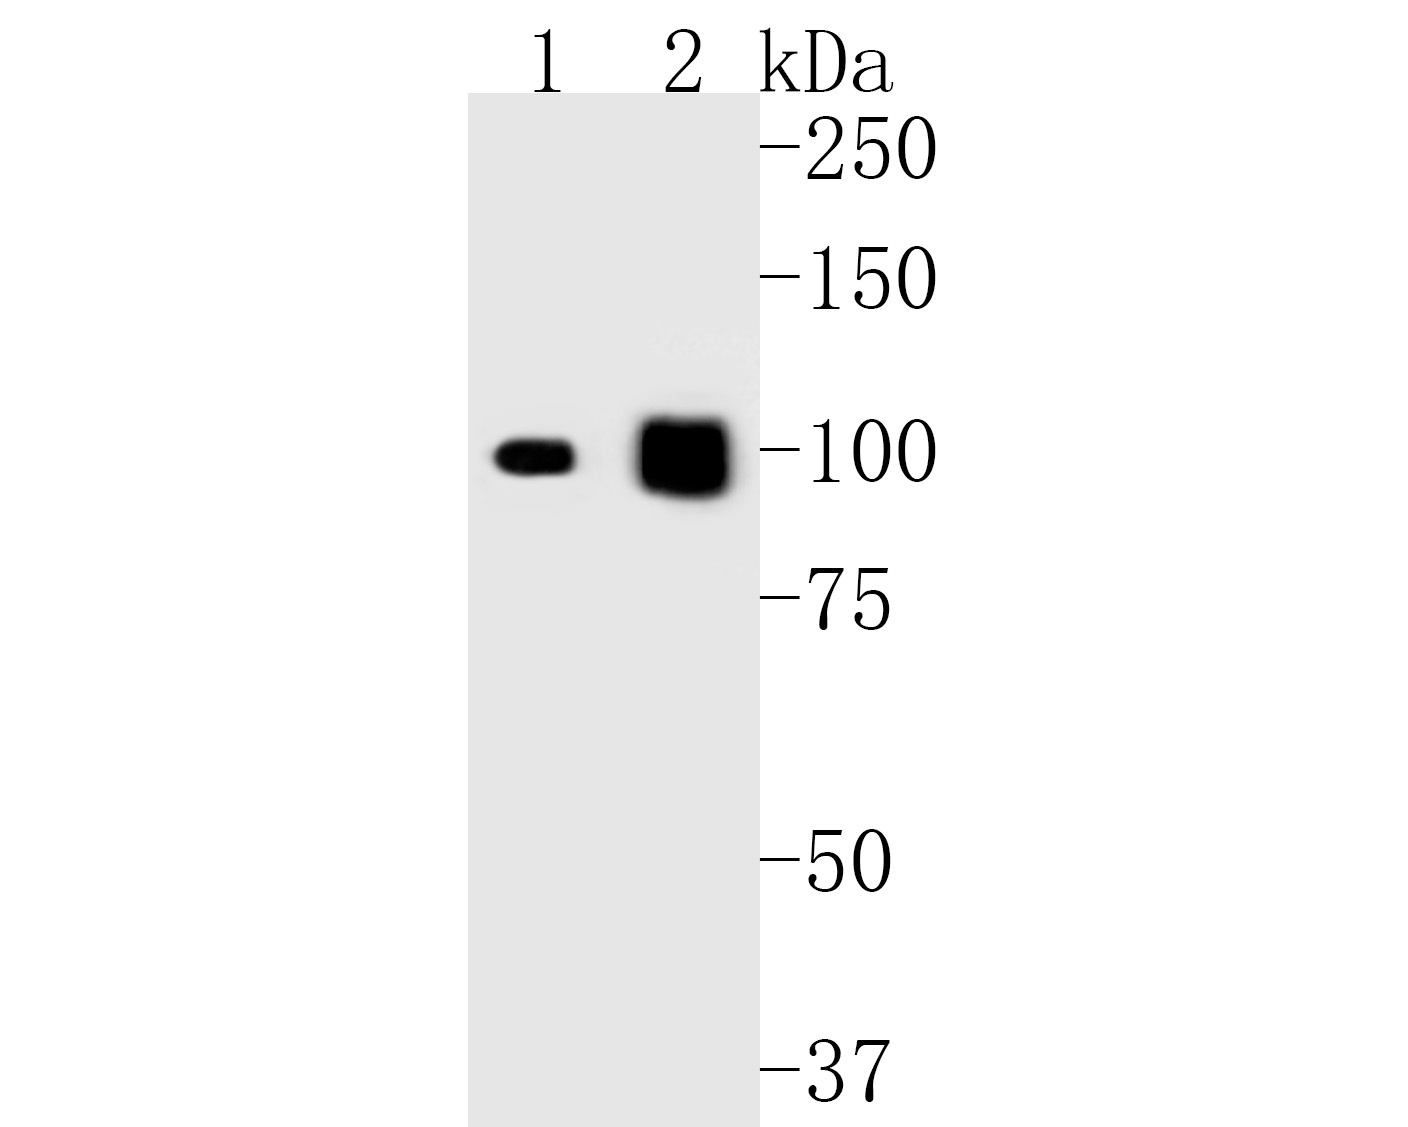 Western blot analysis of Desmocollin 3 on different lysates. Proteins were transferred to a PVDF membrane and blocked with 5% BSA in PBS for 1 hour at room temperature. The primary antibody (ET7111-26, 1/1,000) was used in 5% BSA at room temperature for 2 hours. Goat Anti-Rabbit IgG - HRP Secondary Antibody (HA1001) at 1:5,000 dilution was used for 1 hour at room temperature.<br /> Positive control: <br /> Lane 1: rat skin tissue lysate<br /> Lane 2: A431 cell lysate